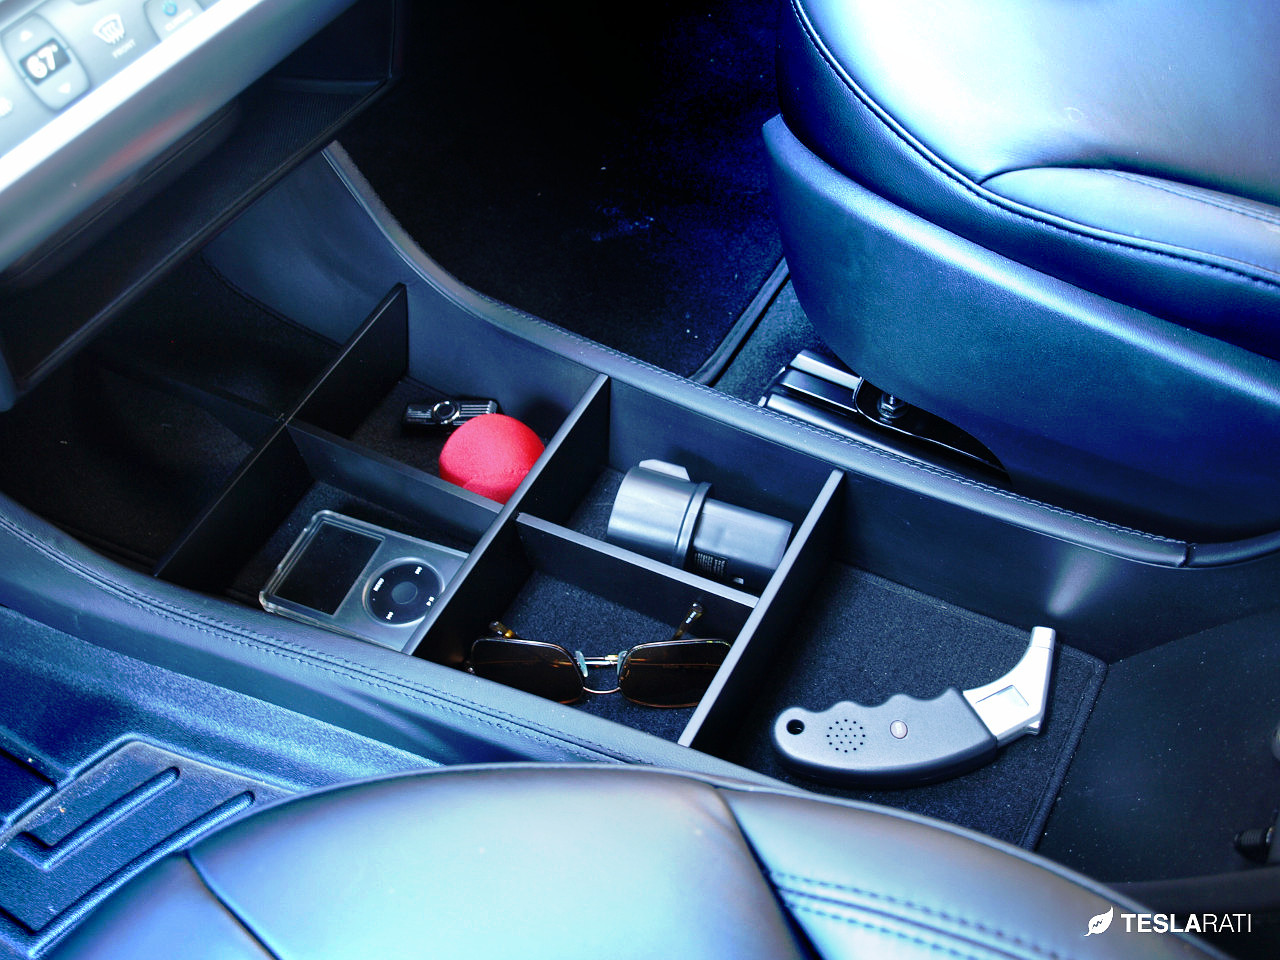 A Simple Center Console Organizer For The Tesla Model S